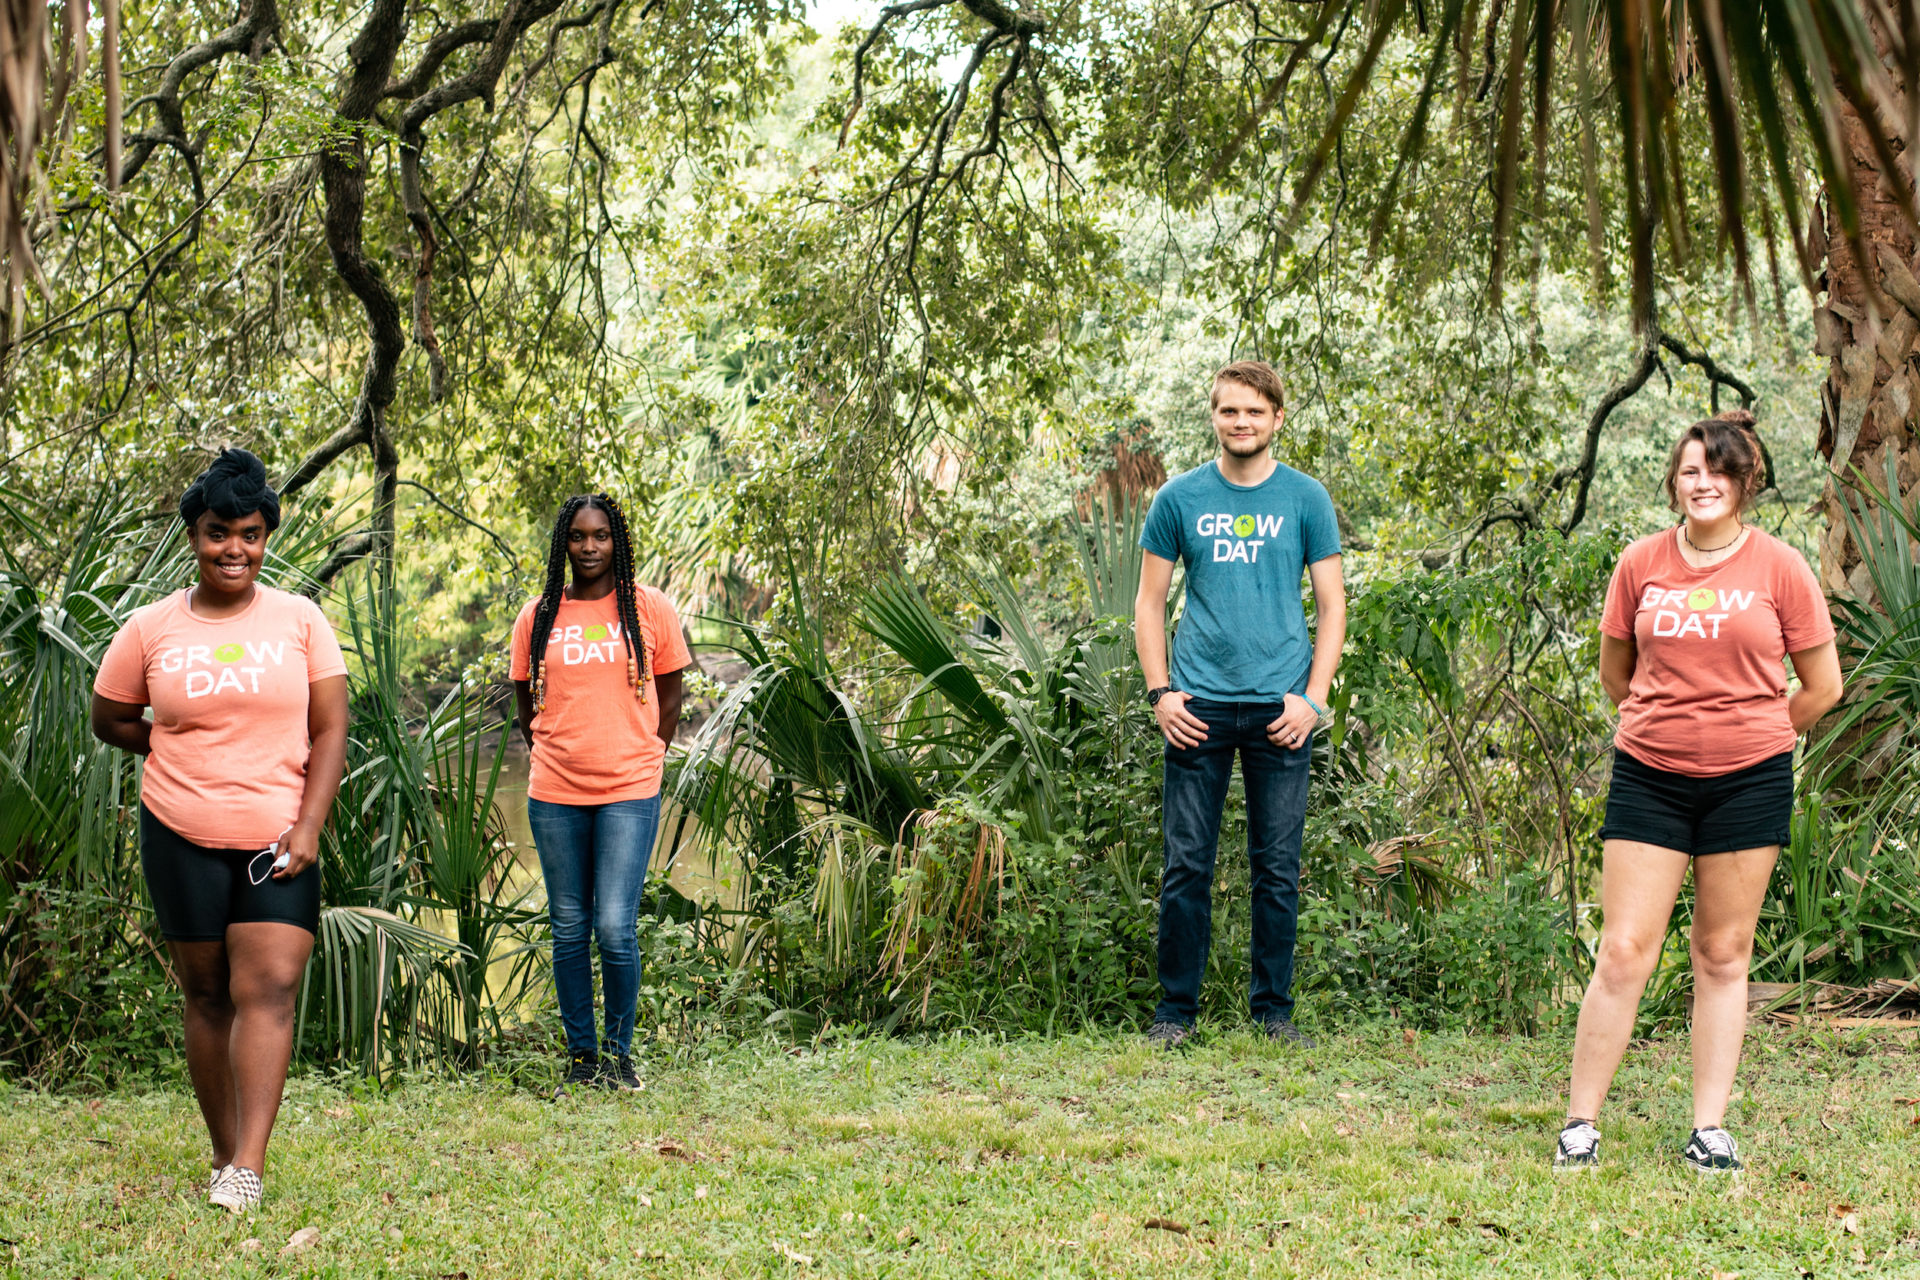 Photograph featuring four leaders of the nonprofit, Grow Dat Youth Farm